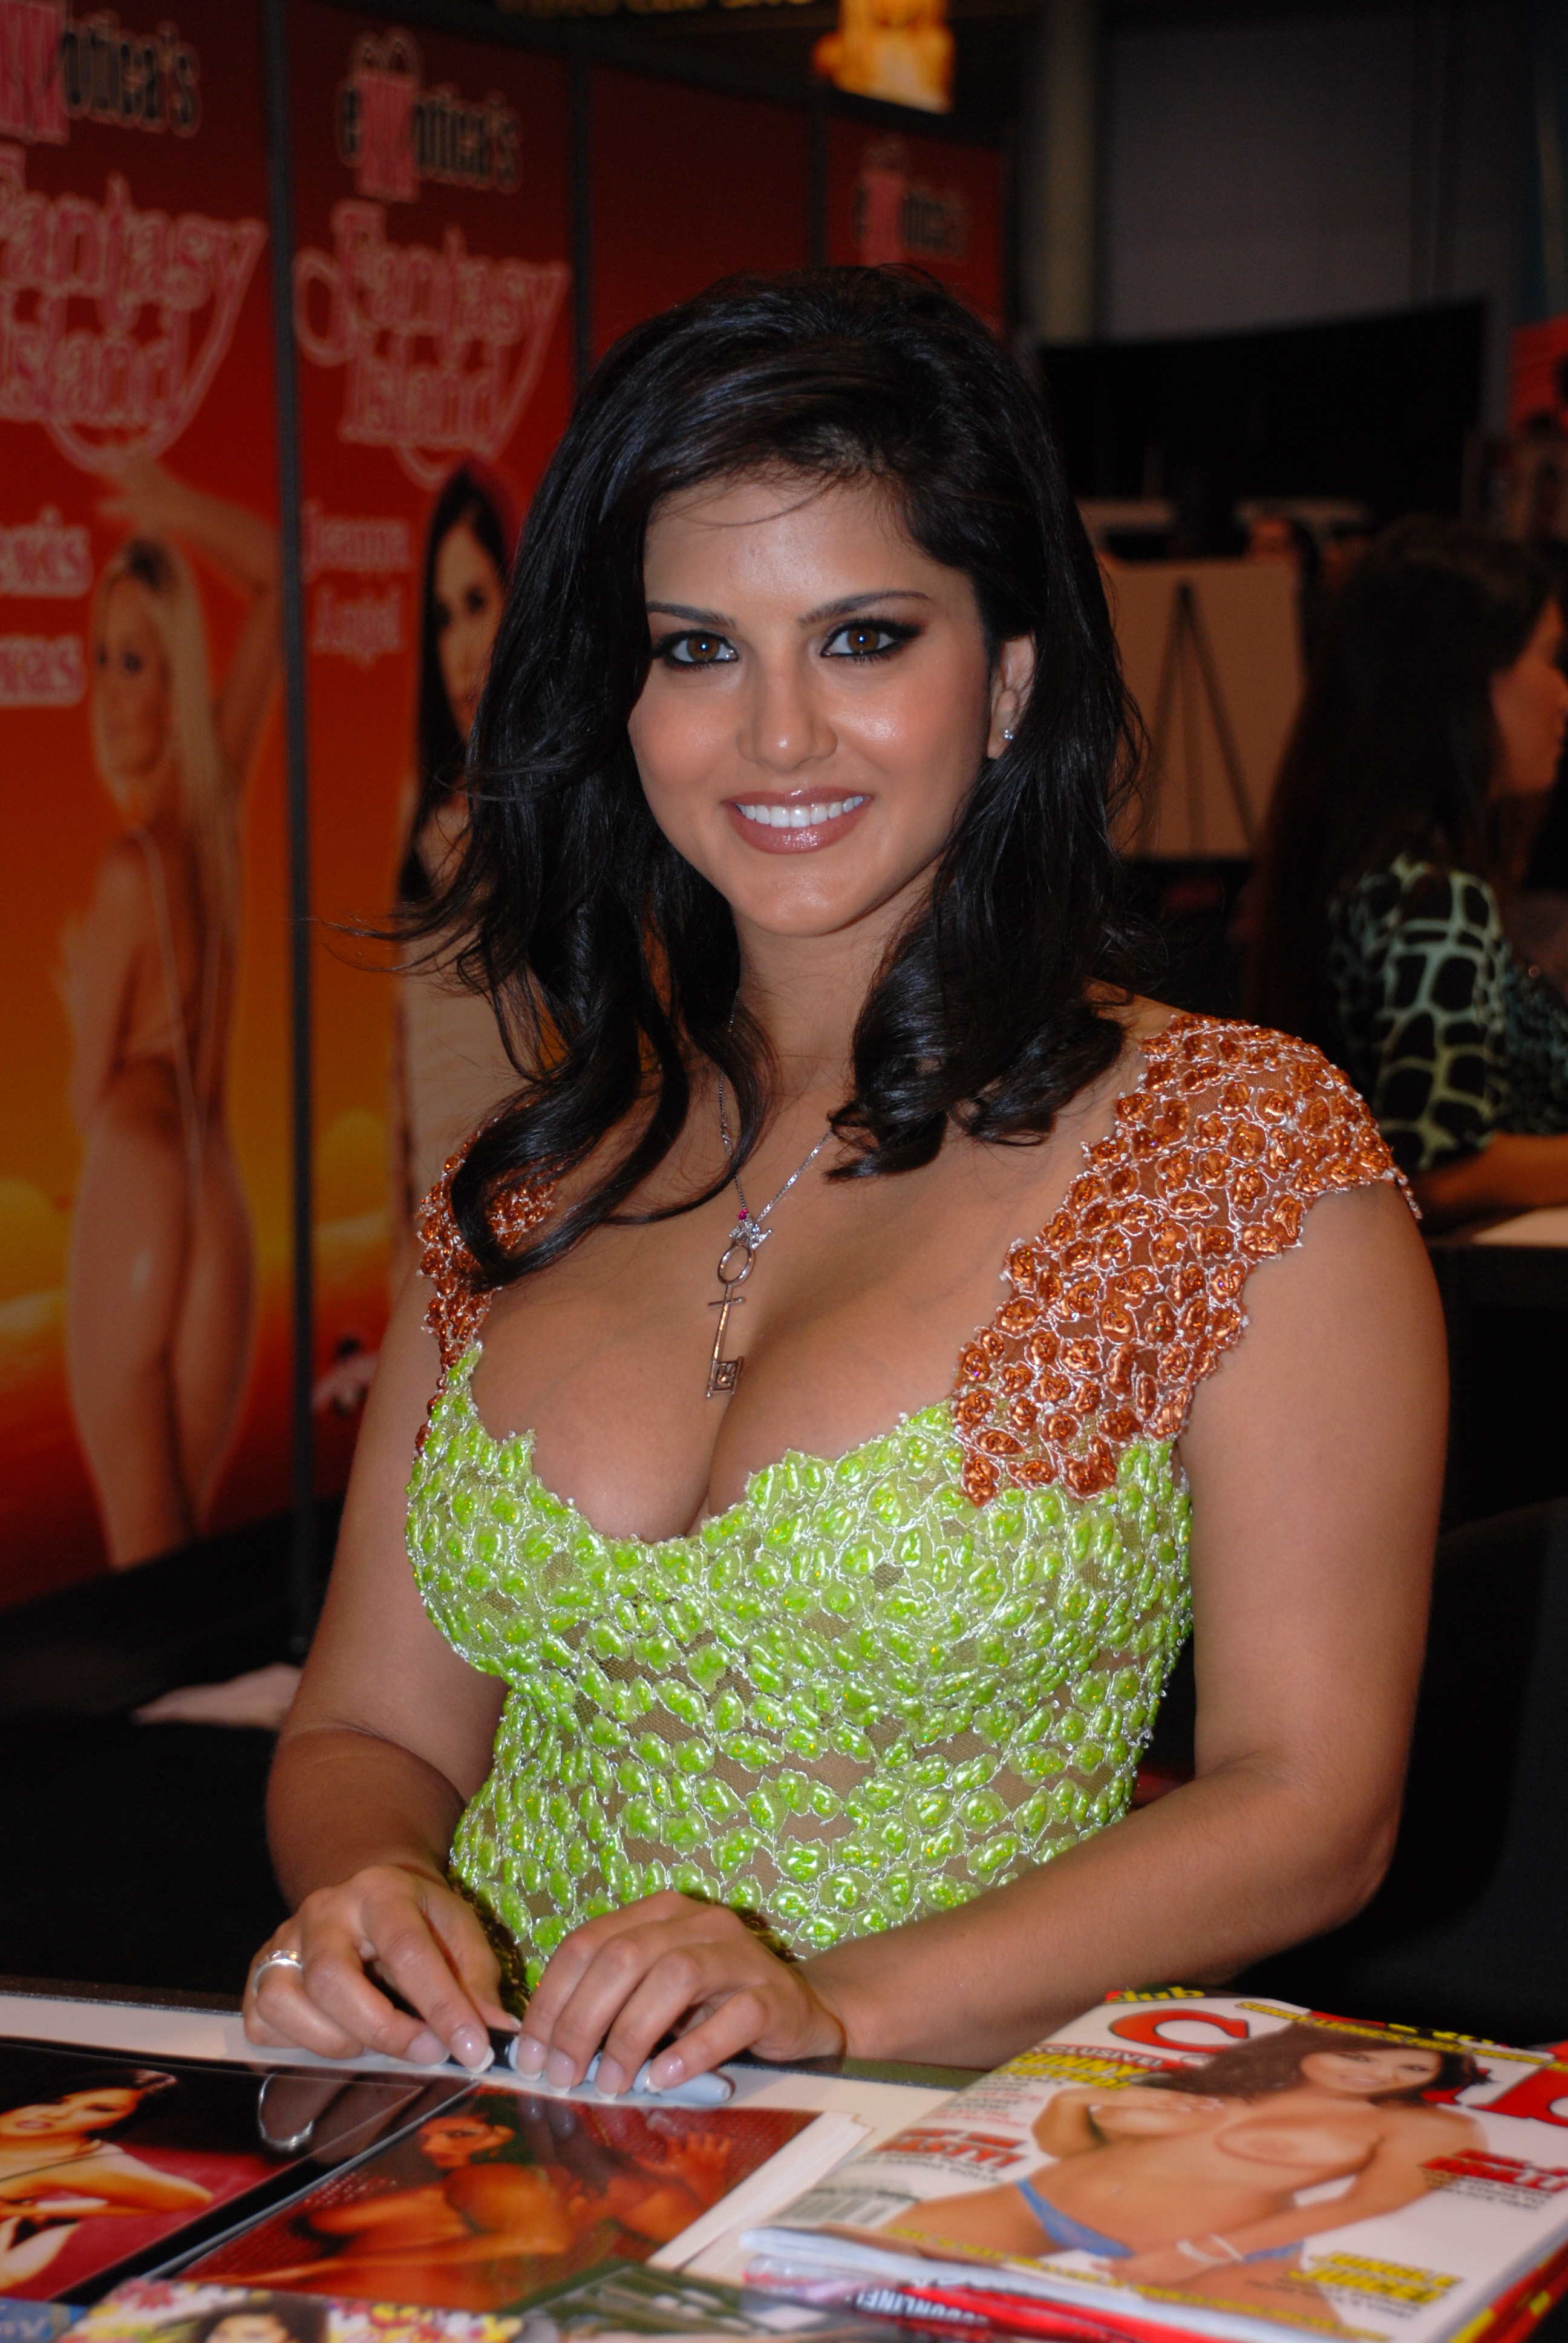 http://upload.wikimedia.org/wikipedia/commons/f/f6/Sunny_Leone_at_Exxxotica_2009_Miami_Friday_2_adjusted.jpg